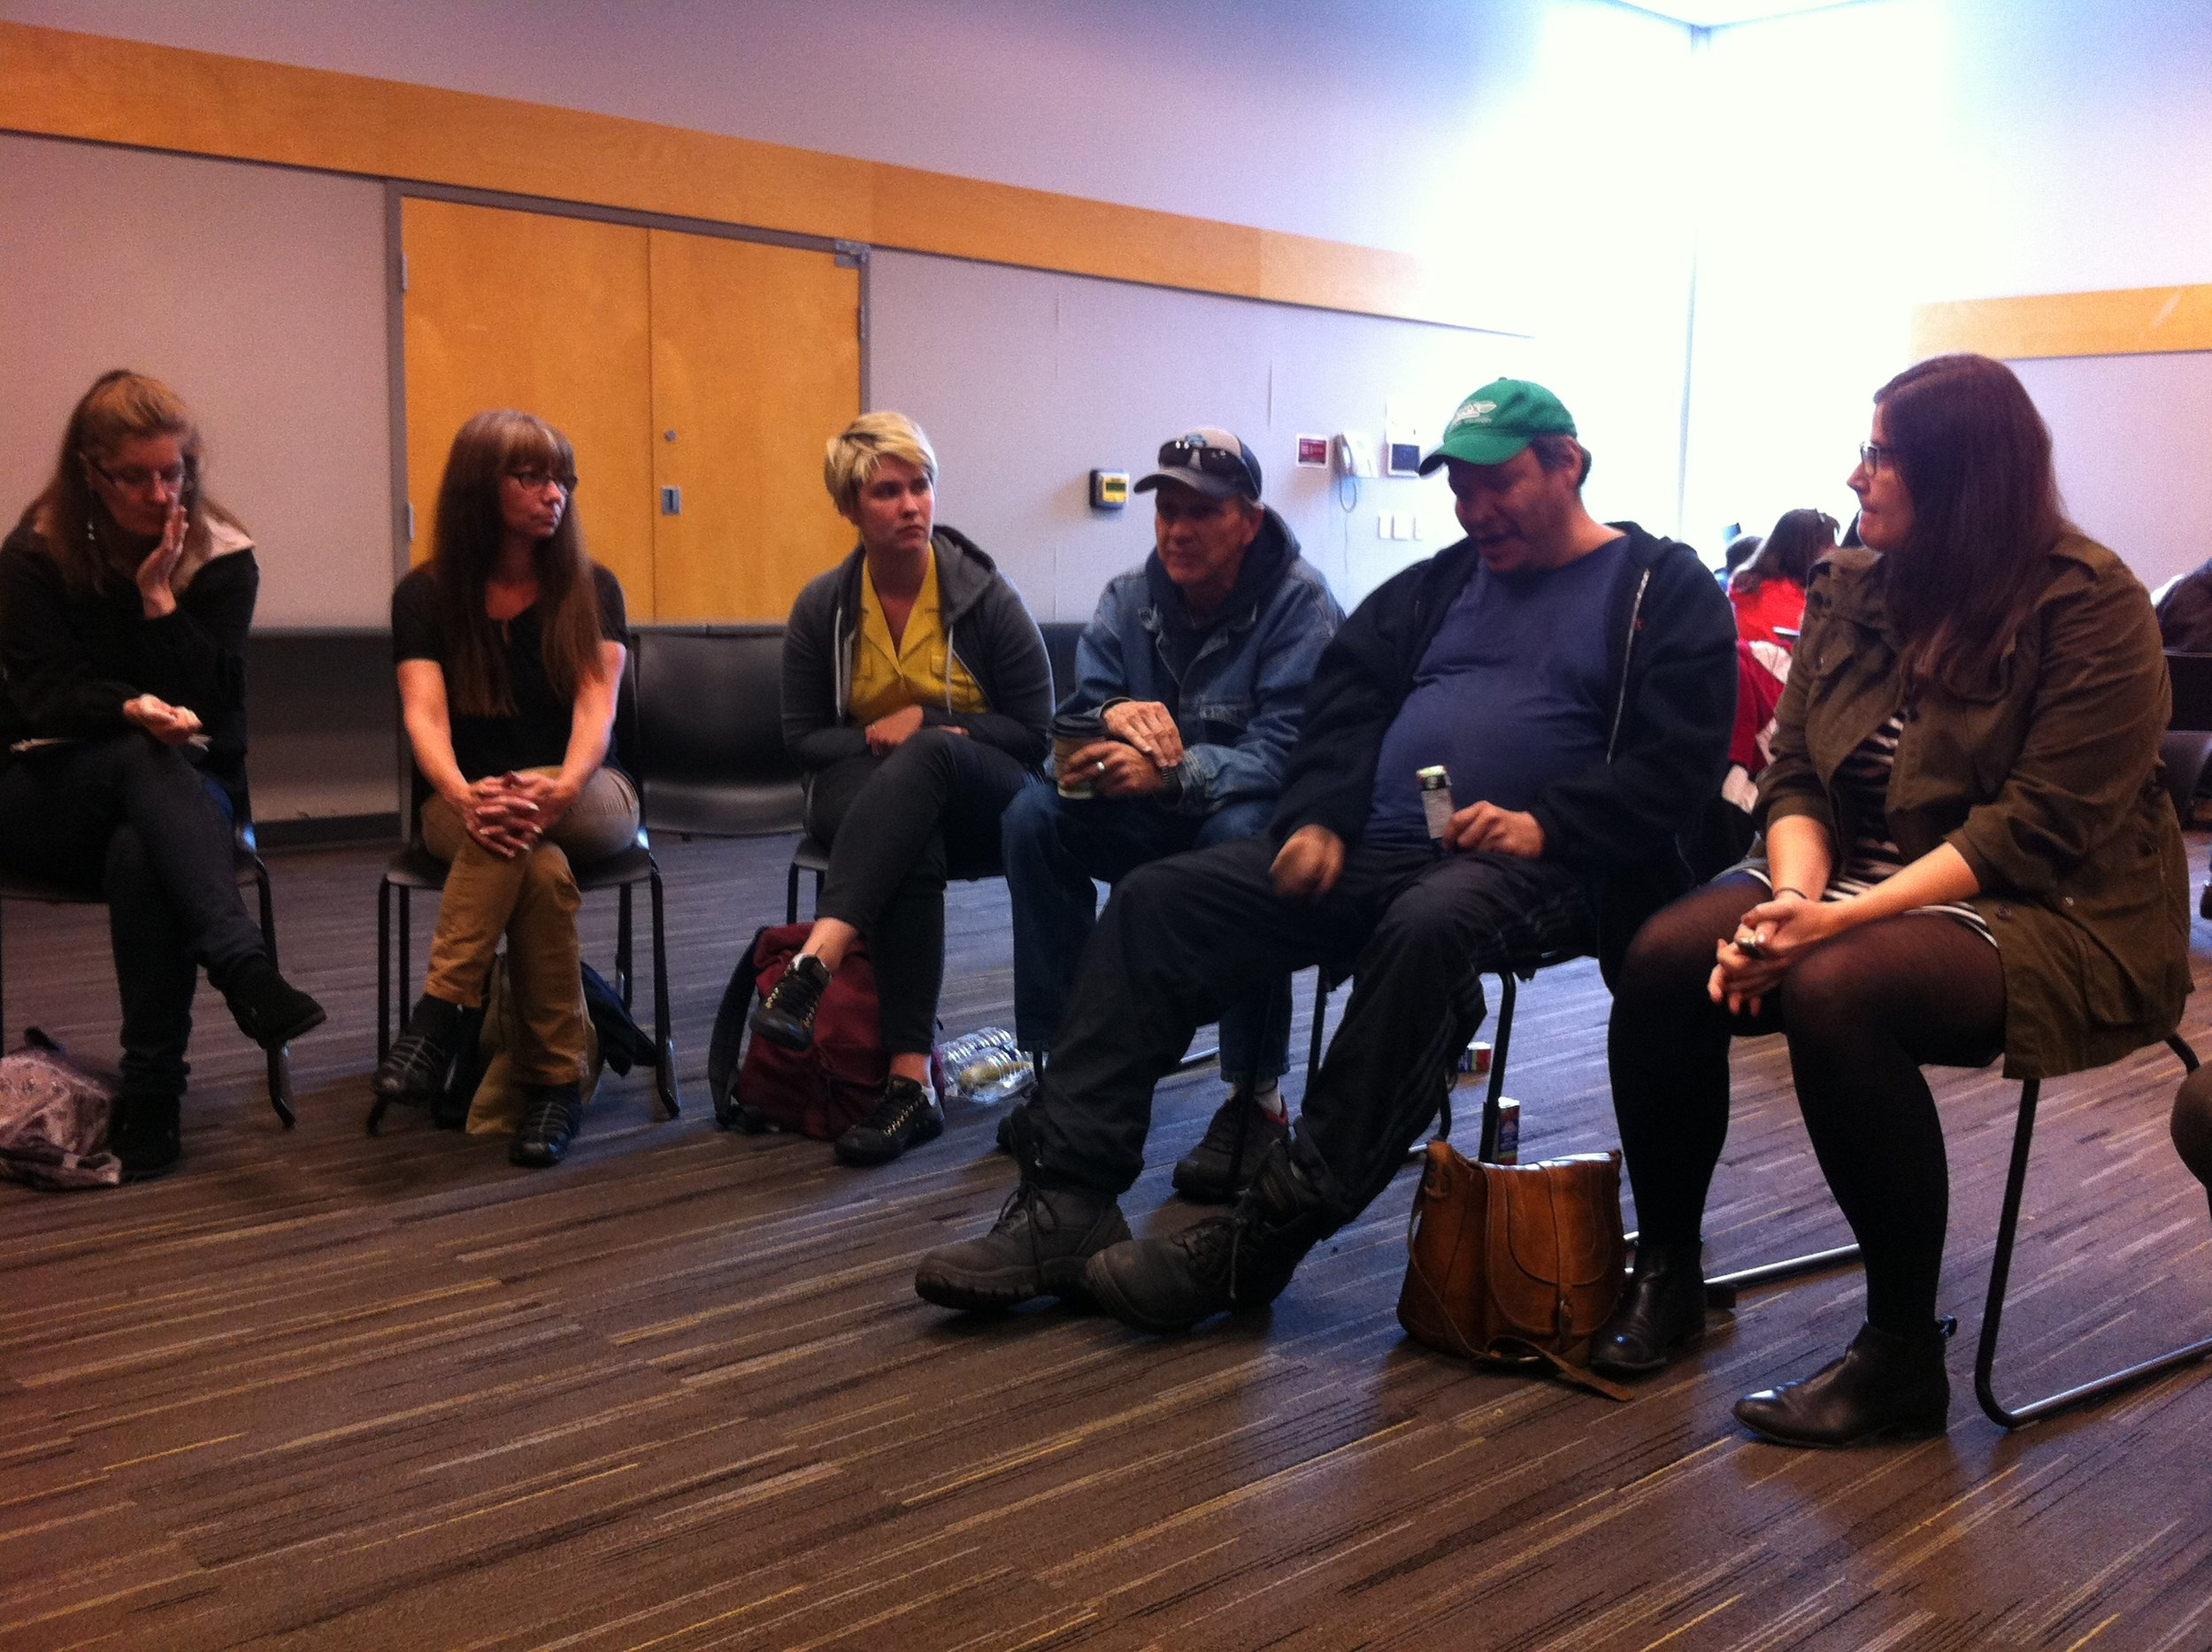 BC-Yukon Drug War Survivors AGM June 13 2016.JPG